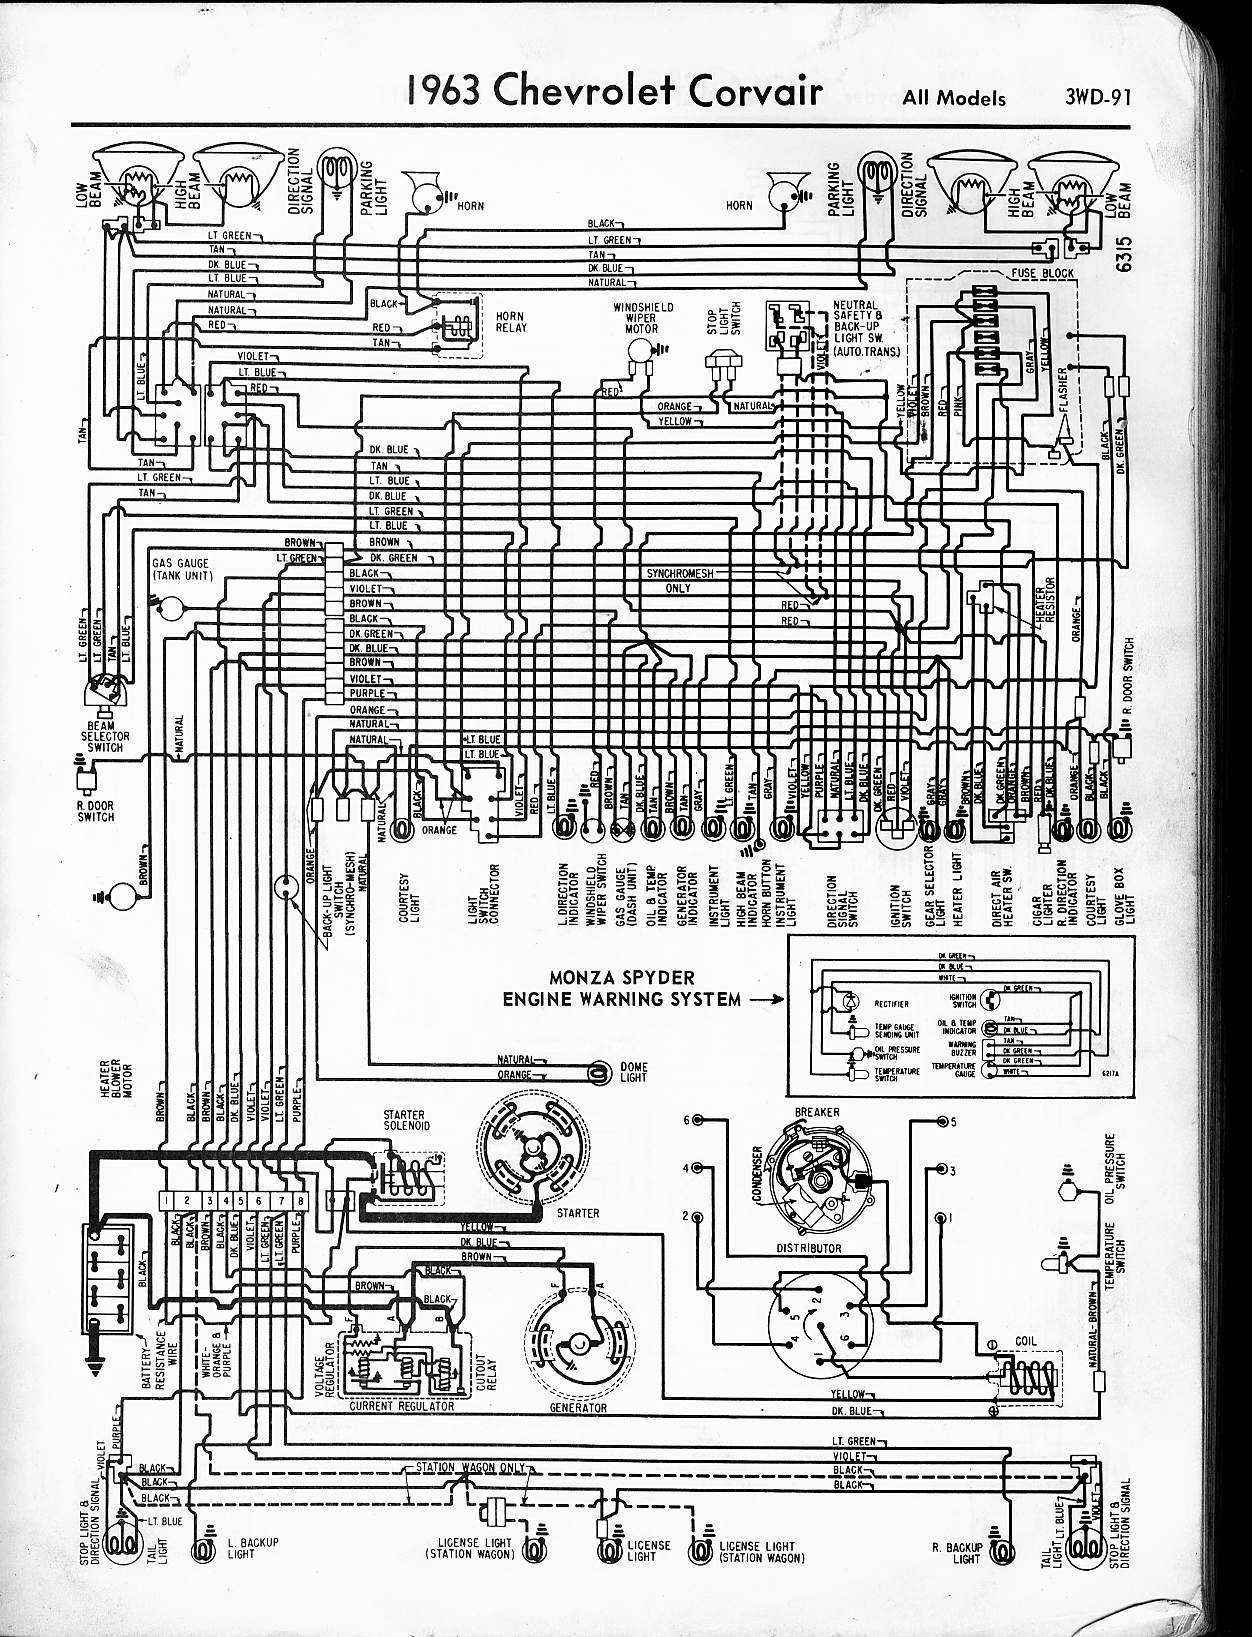 Chevy Alternator Wiring Diagram 1968 C10 Library Chevrolet 63 Schemes Basic 65